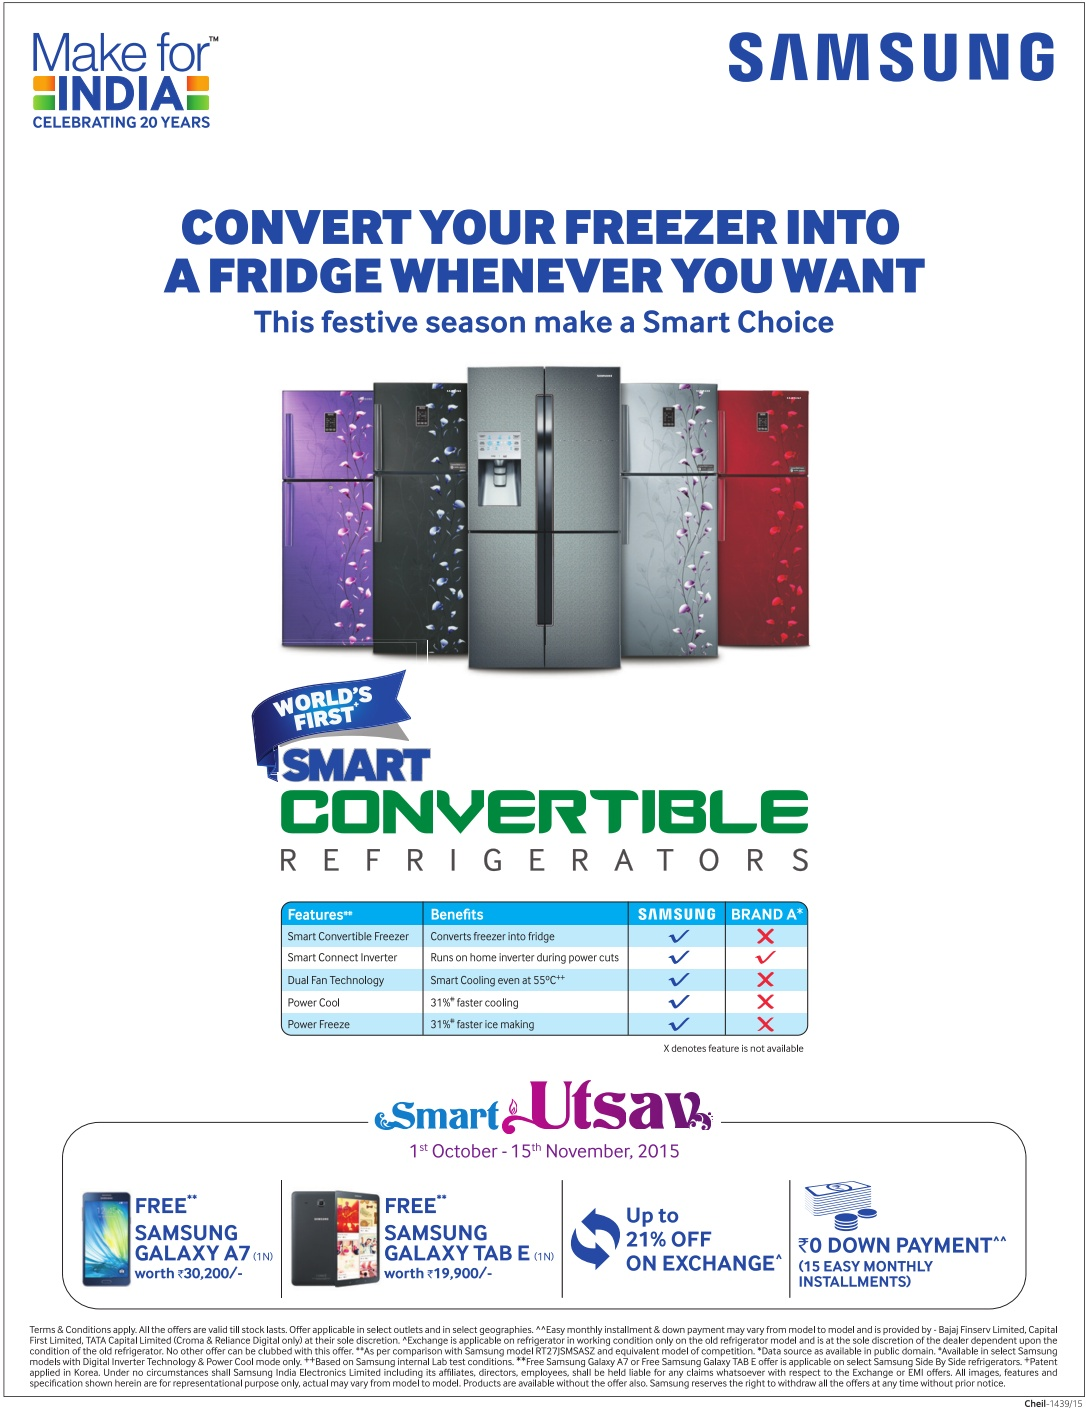 Samsung Smart Refrigerators - Exciting Offer